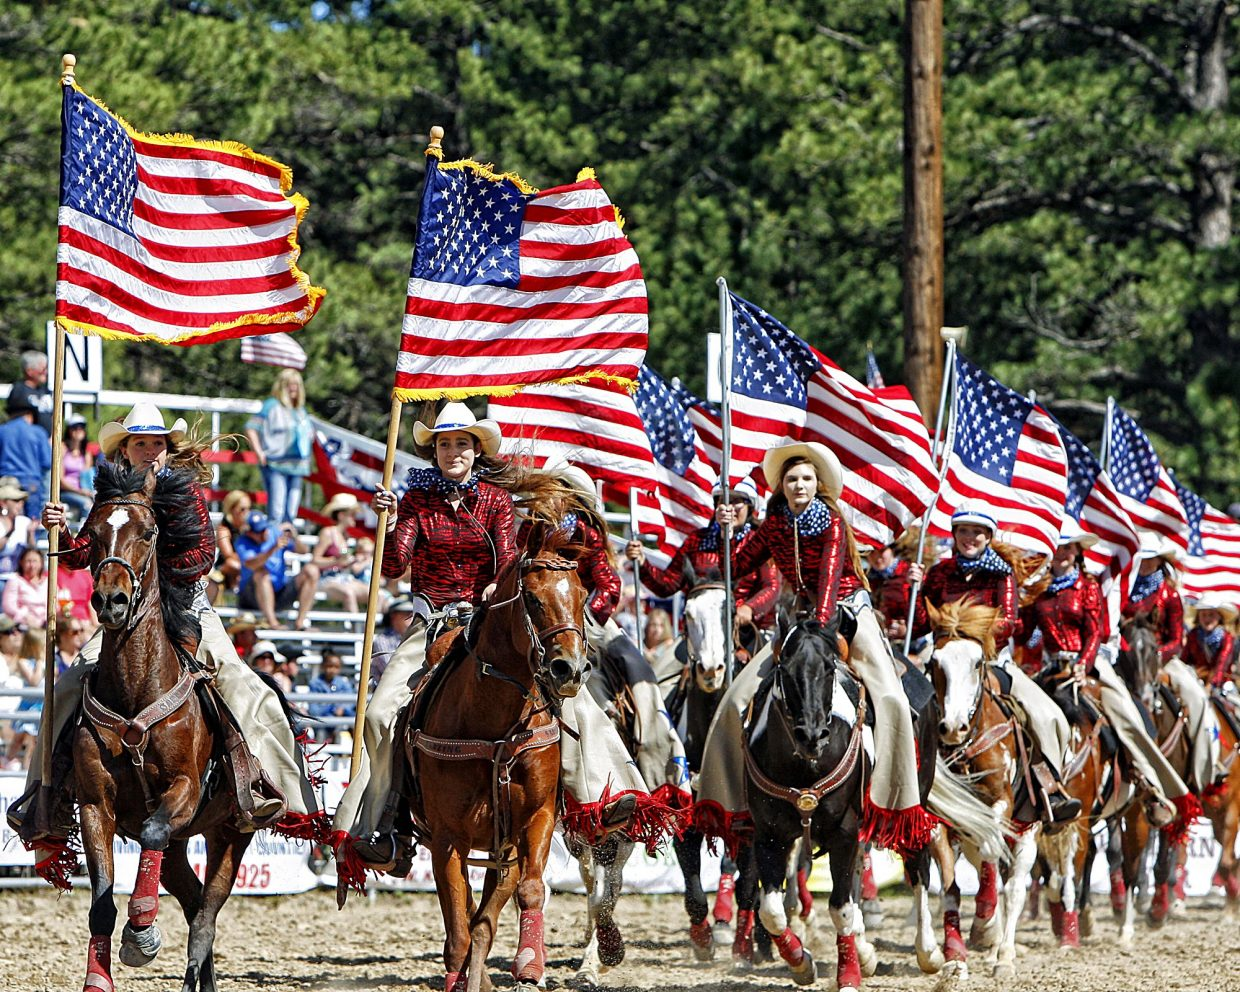 Riders in the Blazing Saddles drill team put on a patriotic show for an appreciative audience near the conclusion of June 4's Red, White & Blue Rodeo at the 2017 Elizabeth Stampede in Elizabeth, Colo.